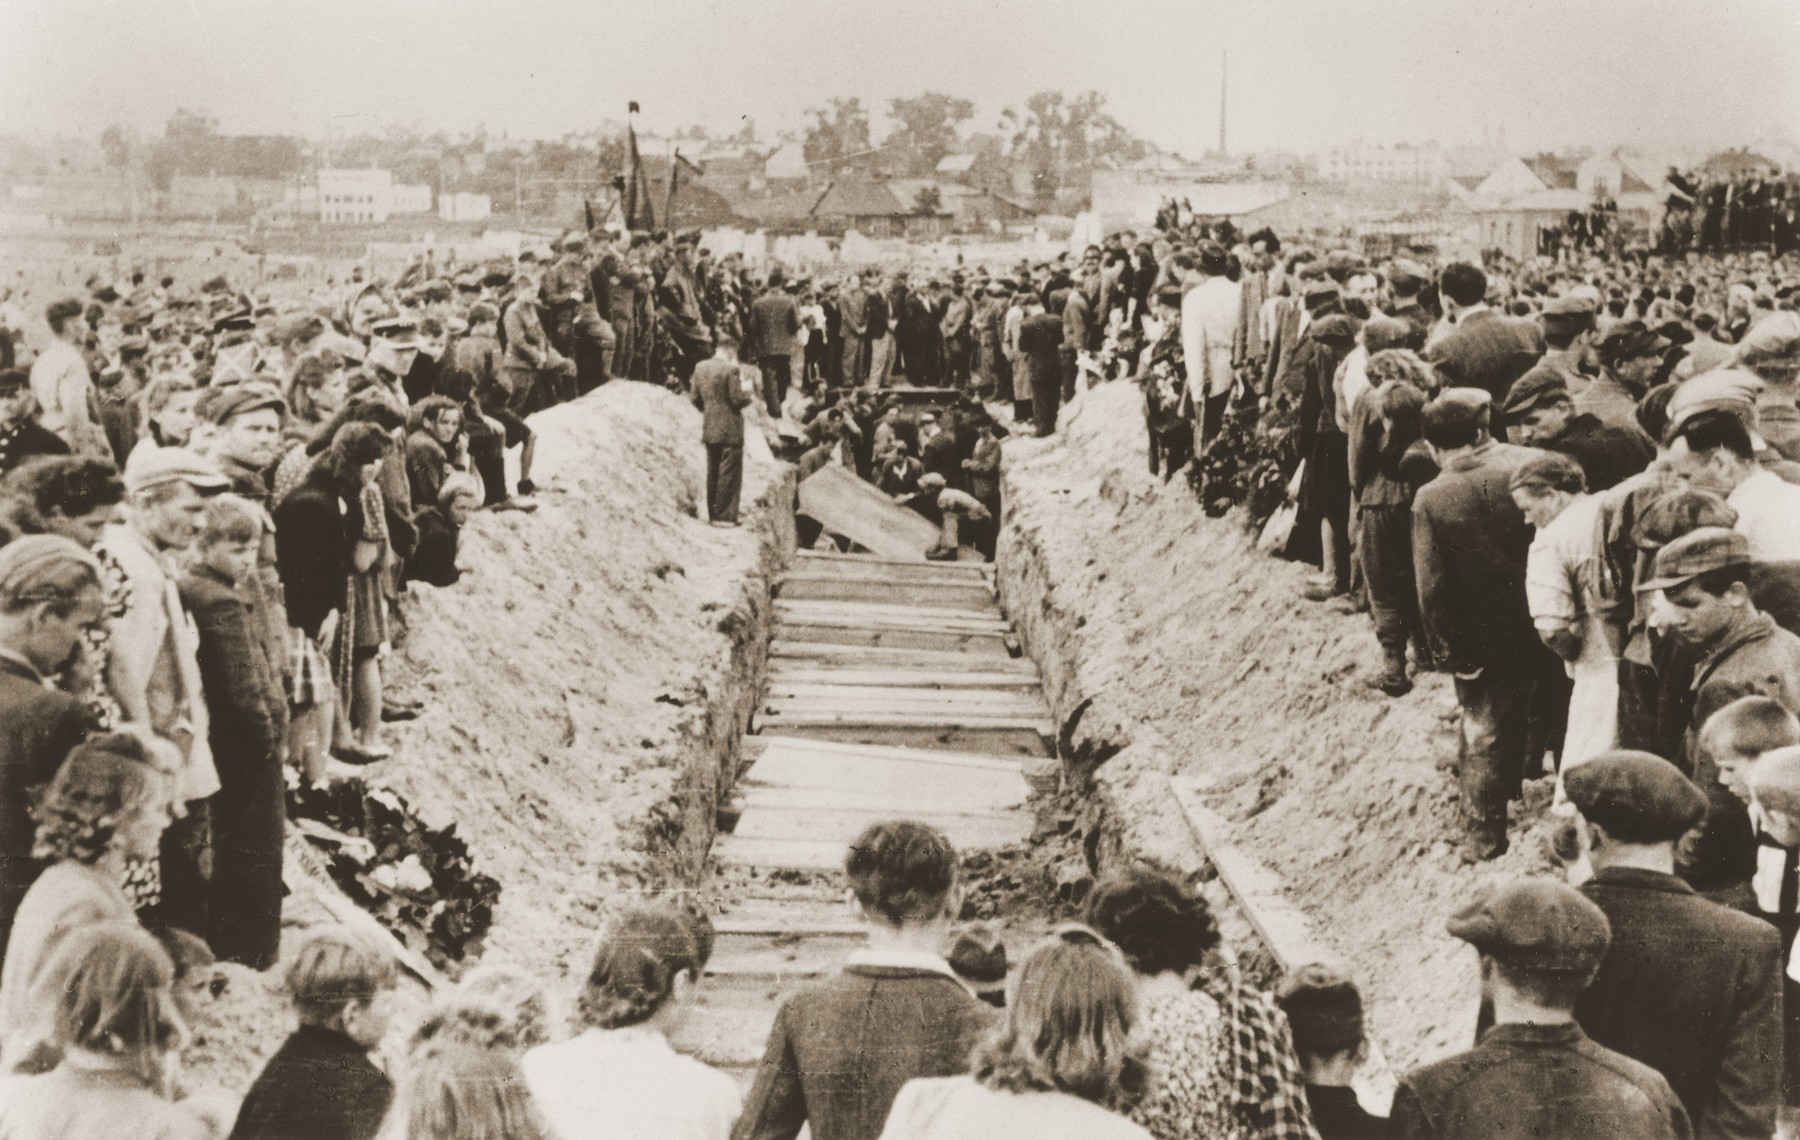 Burying the pogrom victims (Kielce, Jul. 1946)